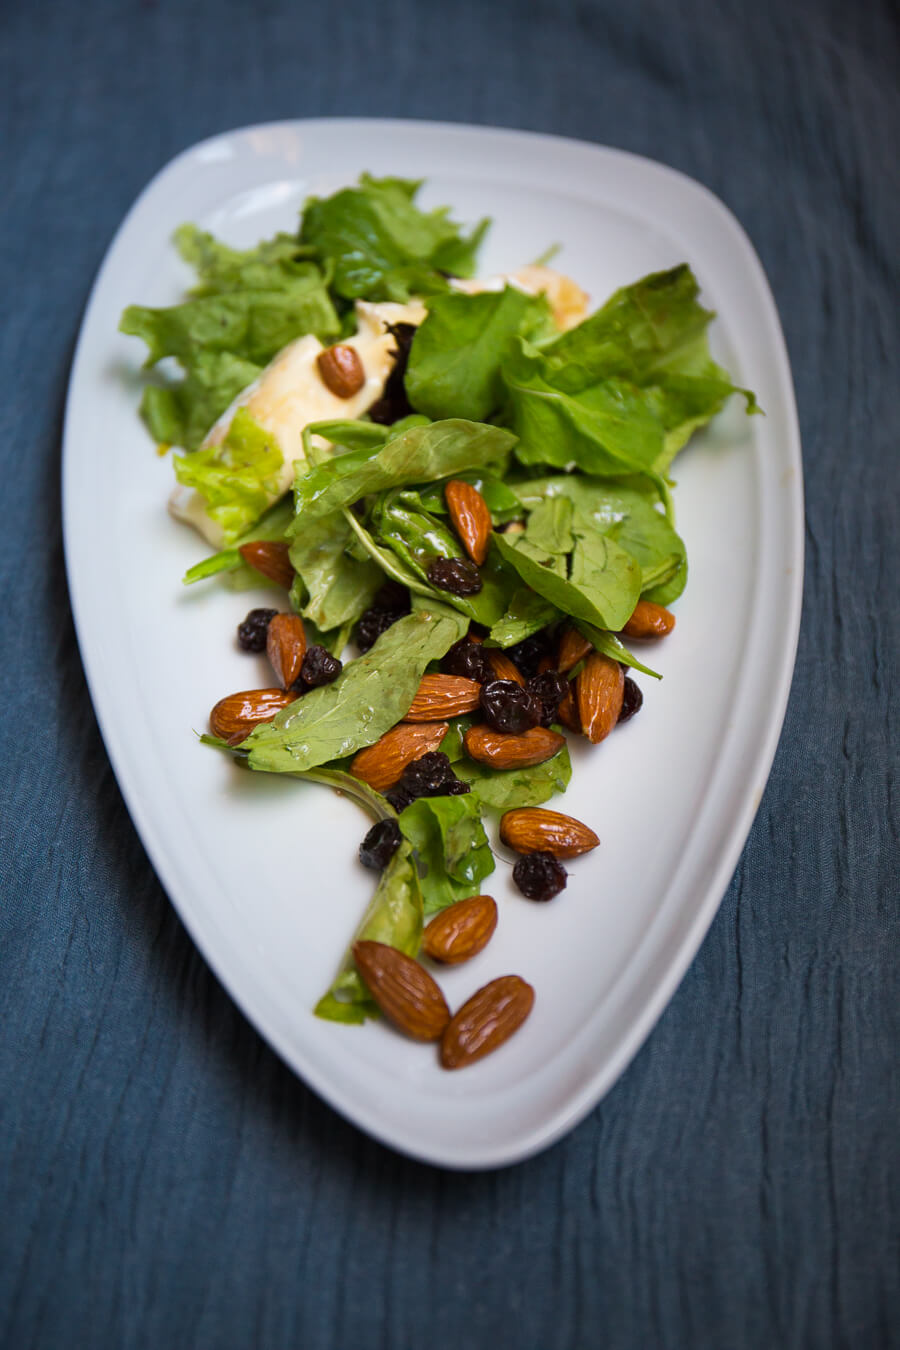 Green salad with almonds